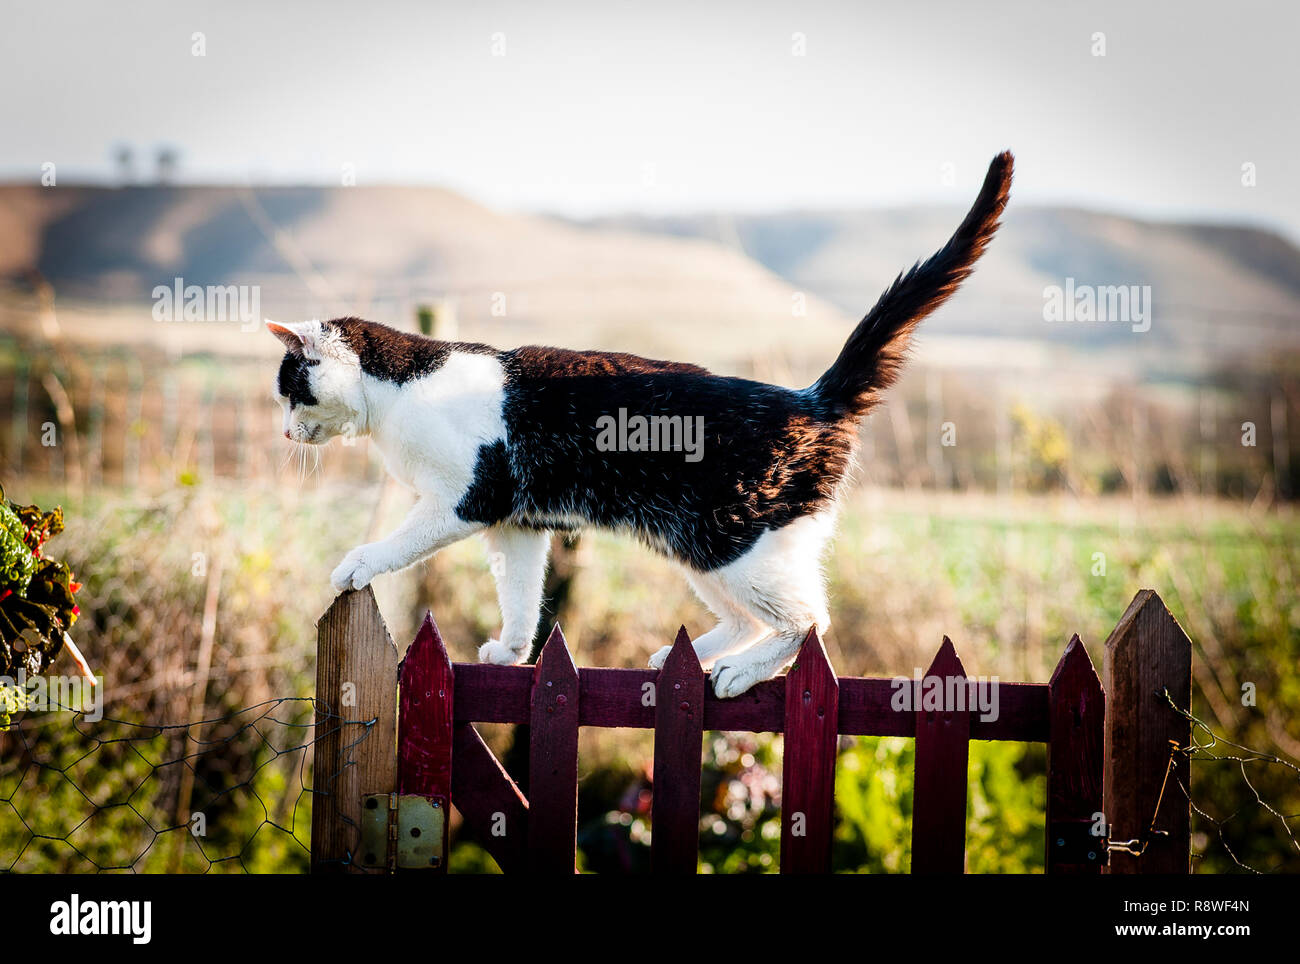 Black and white country cat prowling around a garden gate in December - Stock Image